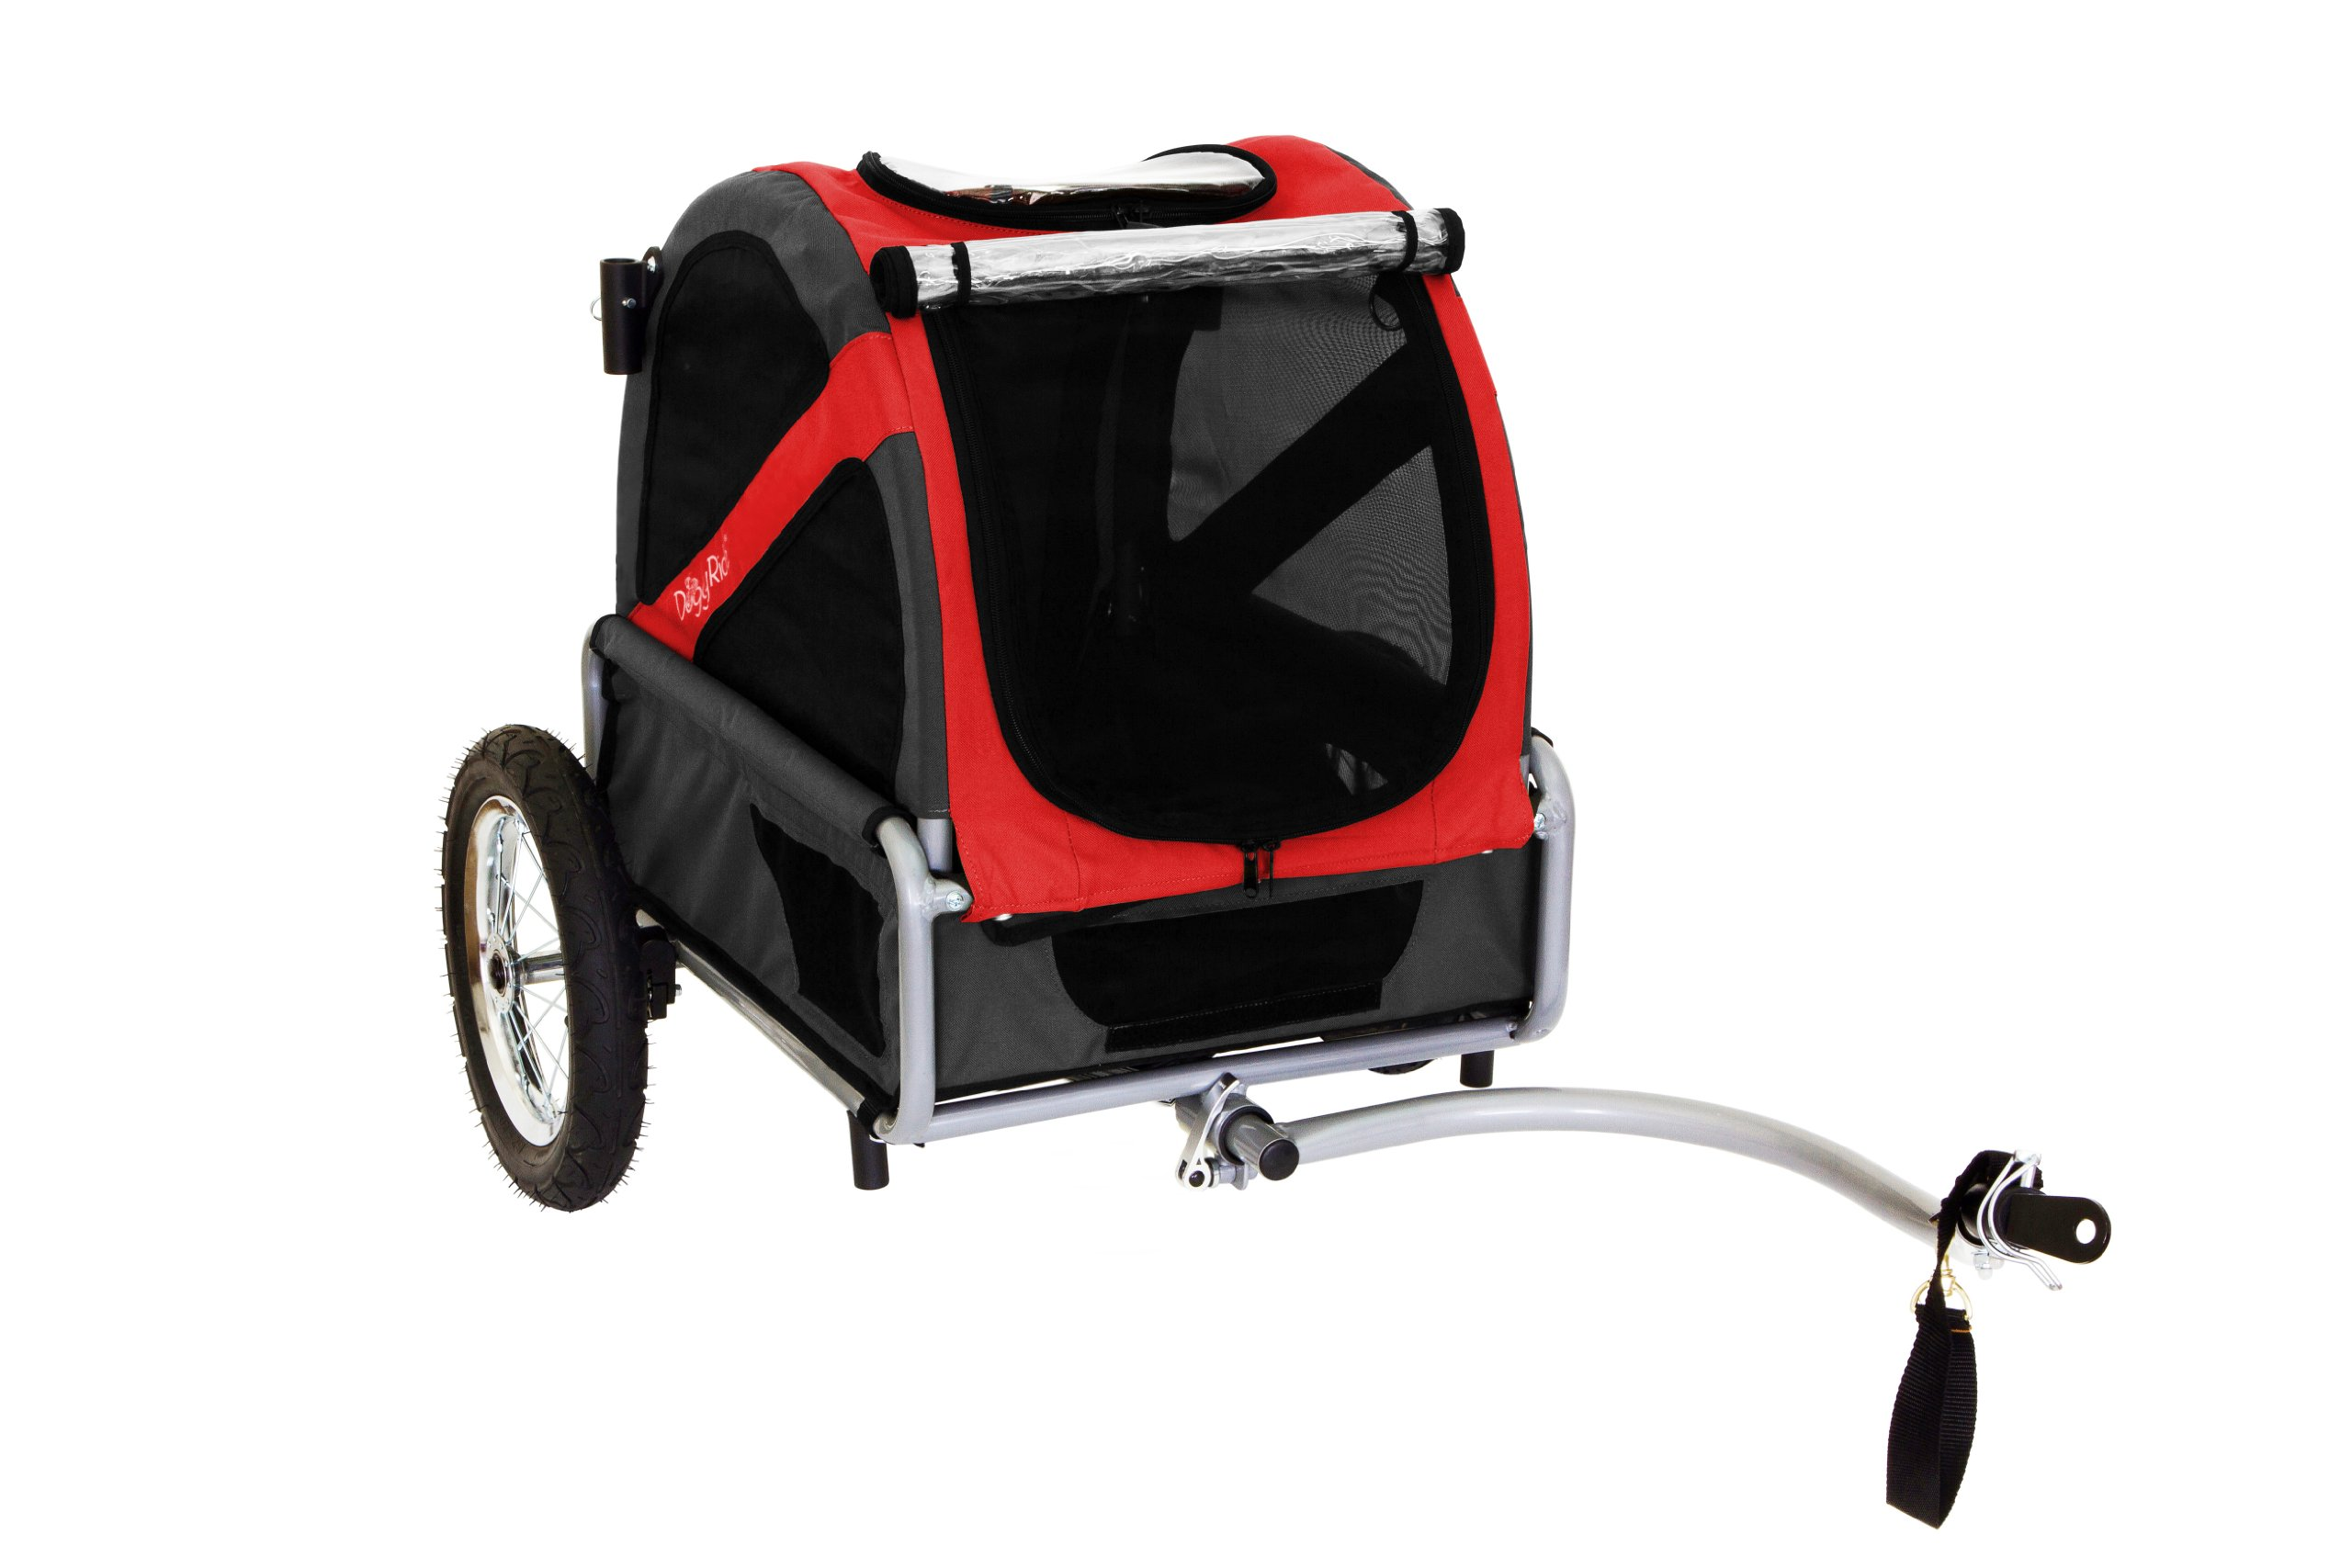 DoggyRide Mini Dog Bike Trailer, Rebel Red/Black by DoggyRide